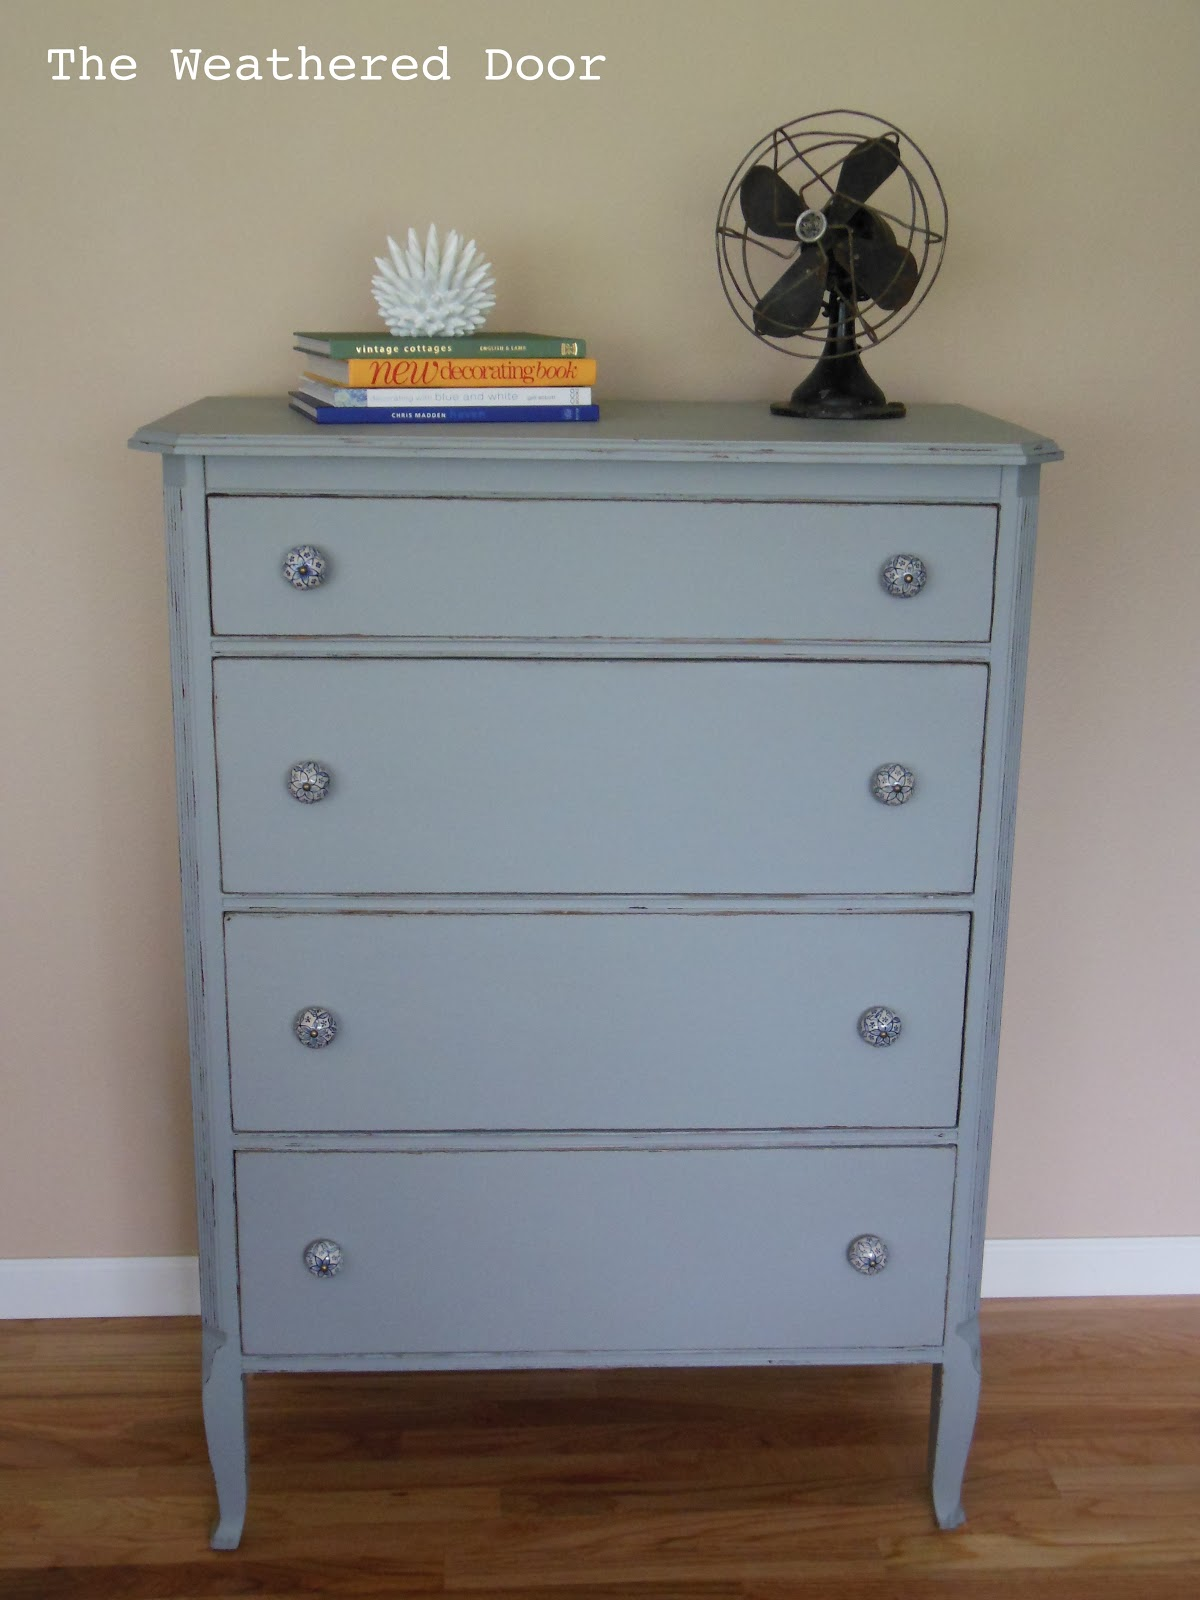 4 Drawer Dresser With Blue And White Pulls The Weathered